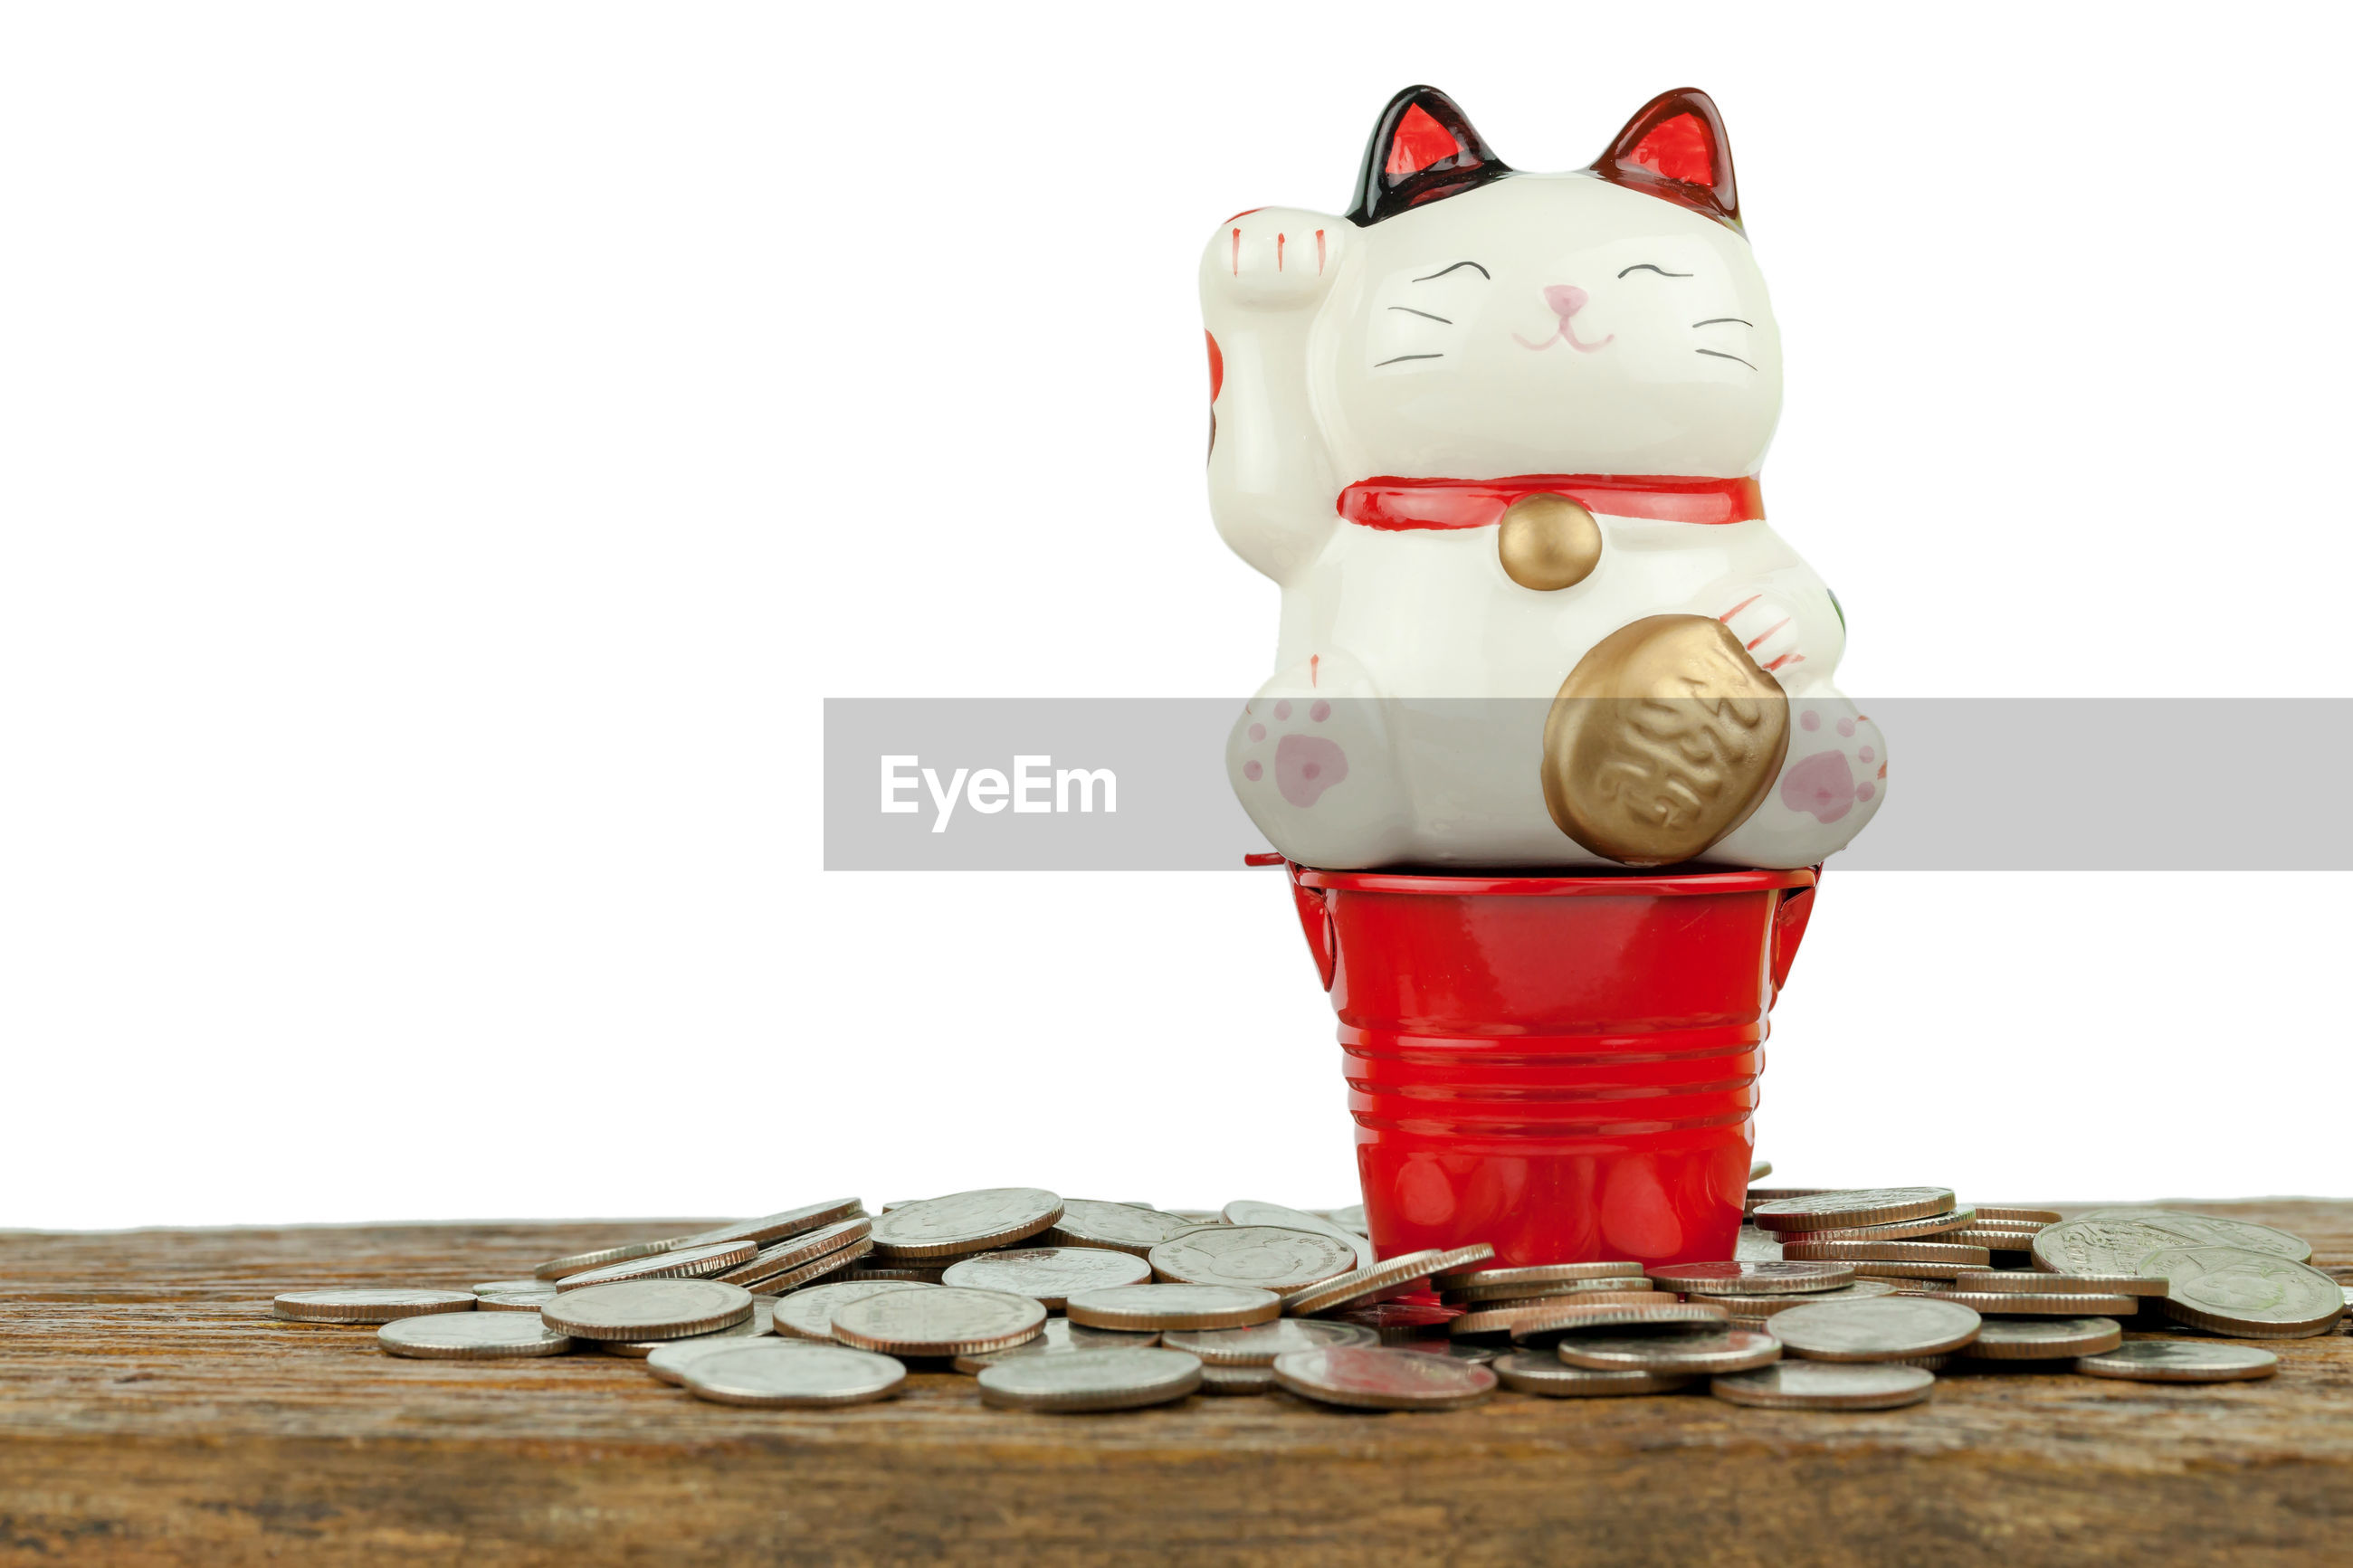 Close-up of maneki-neko and coins on table against white background